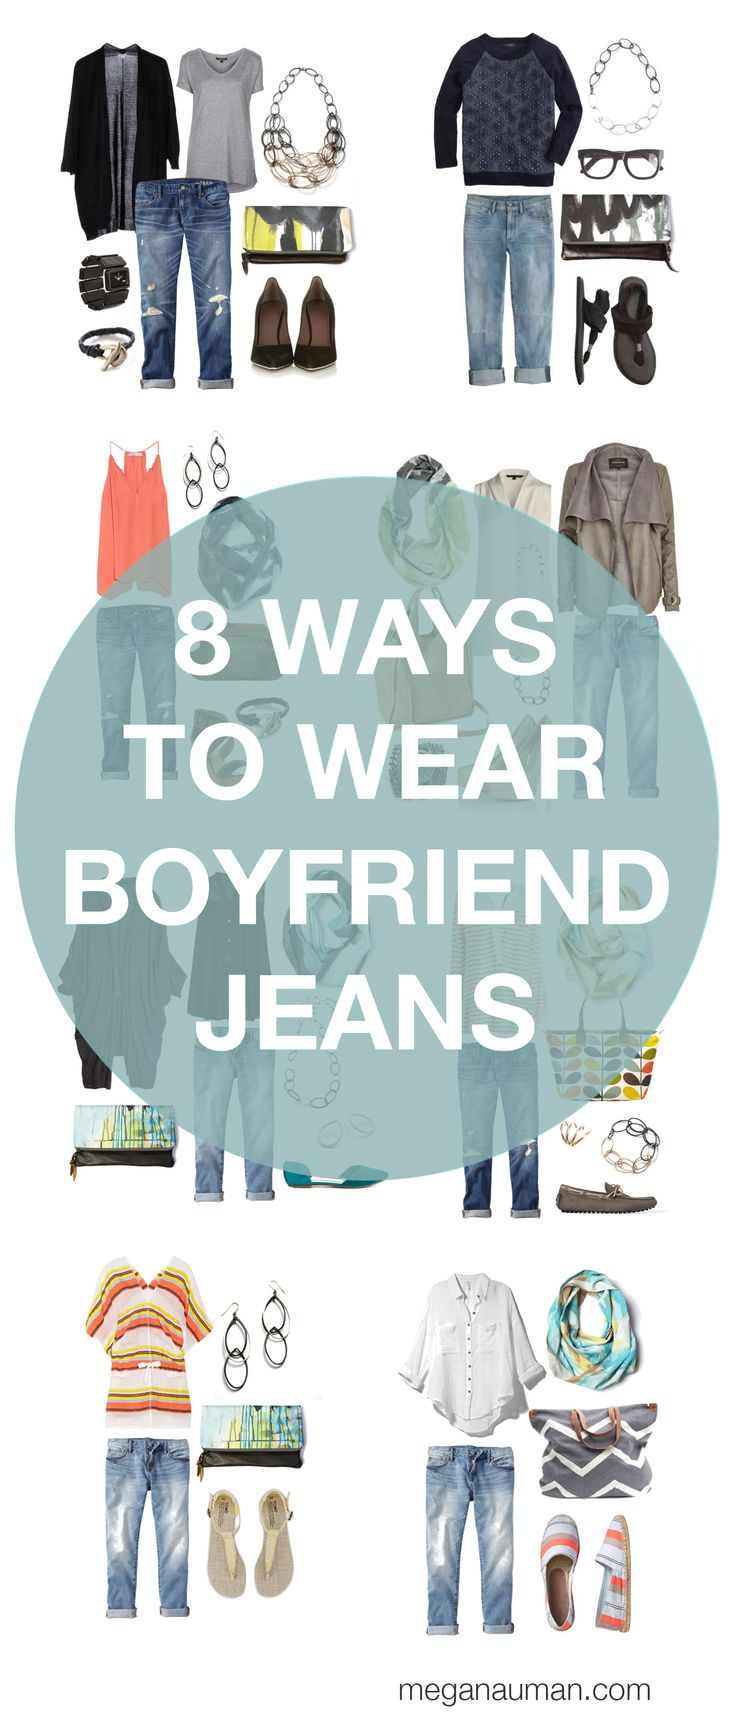 boyfriend jeans outfit inspiration // 8 ways to style your boyfriend jeans by megan auman